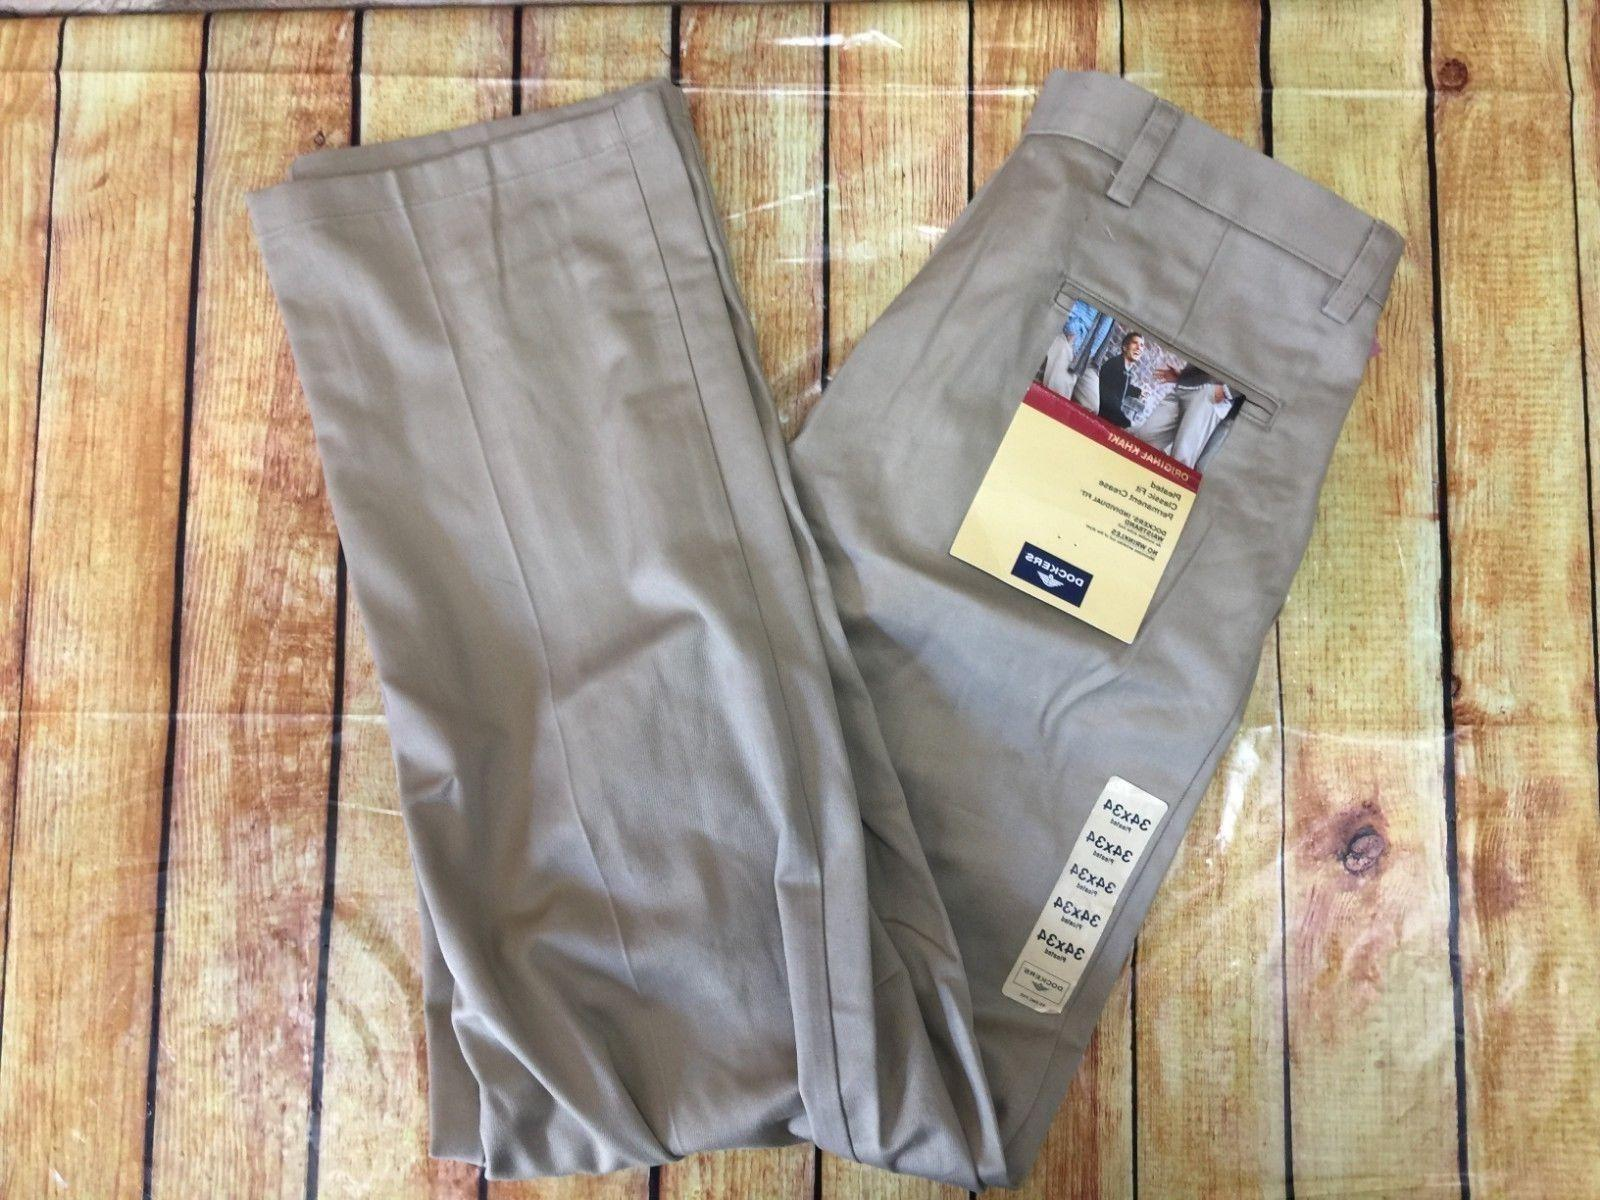 new original khaki pants beige mens 34